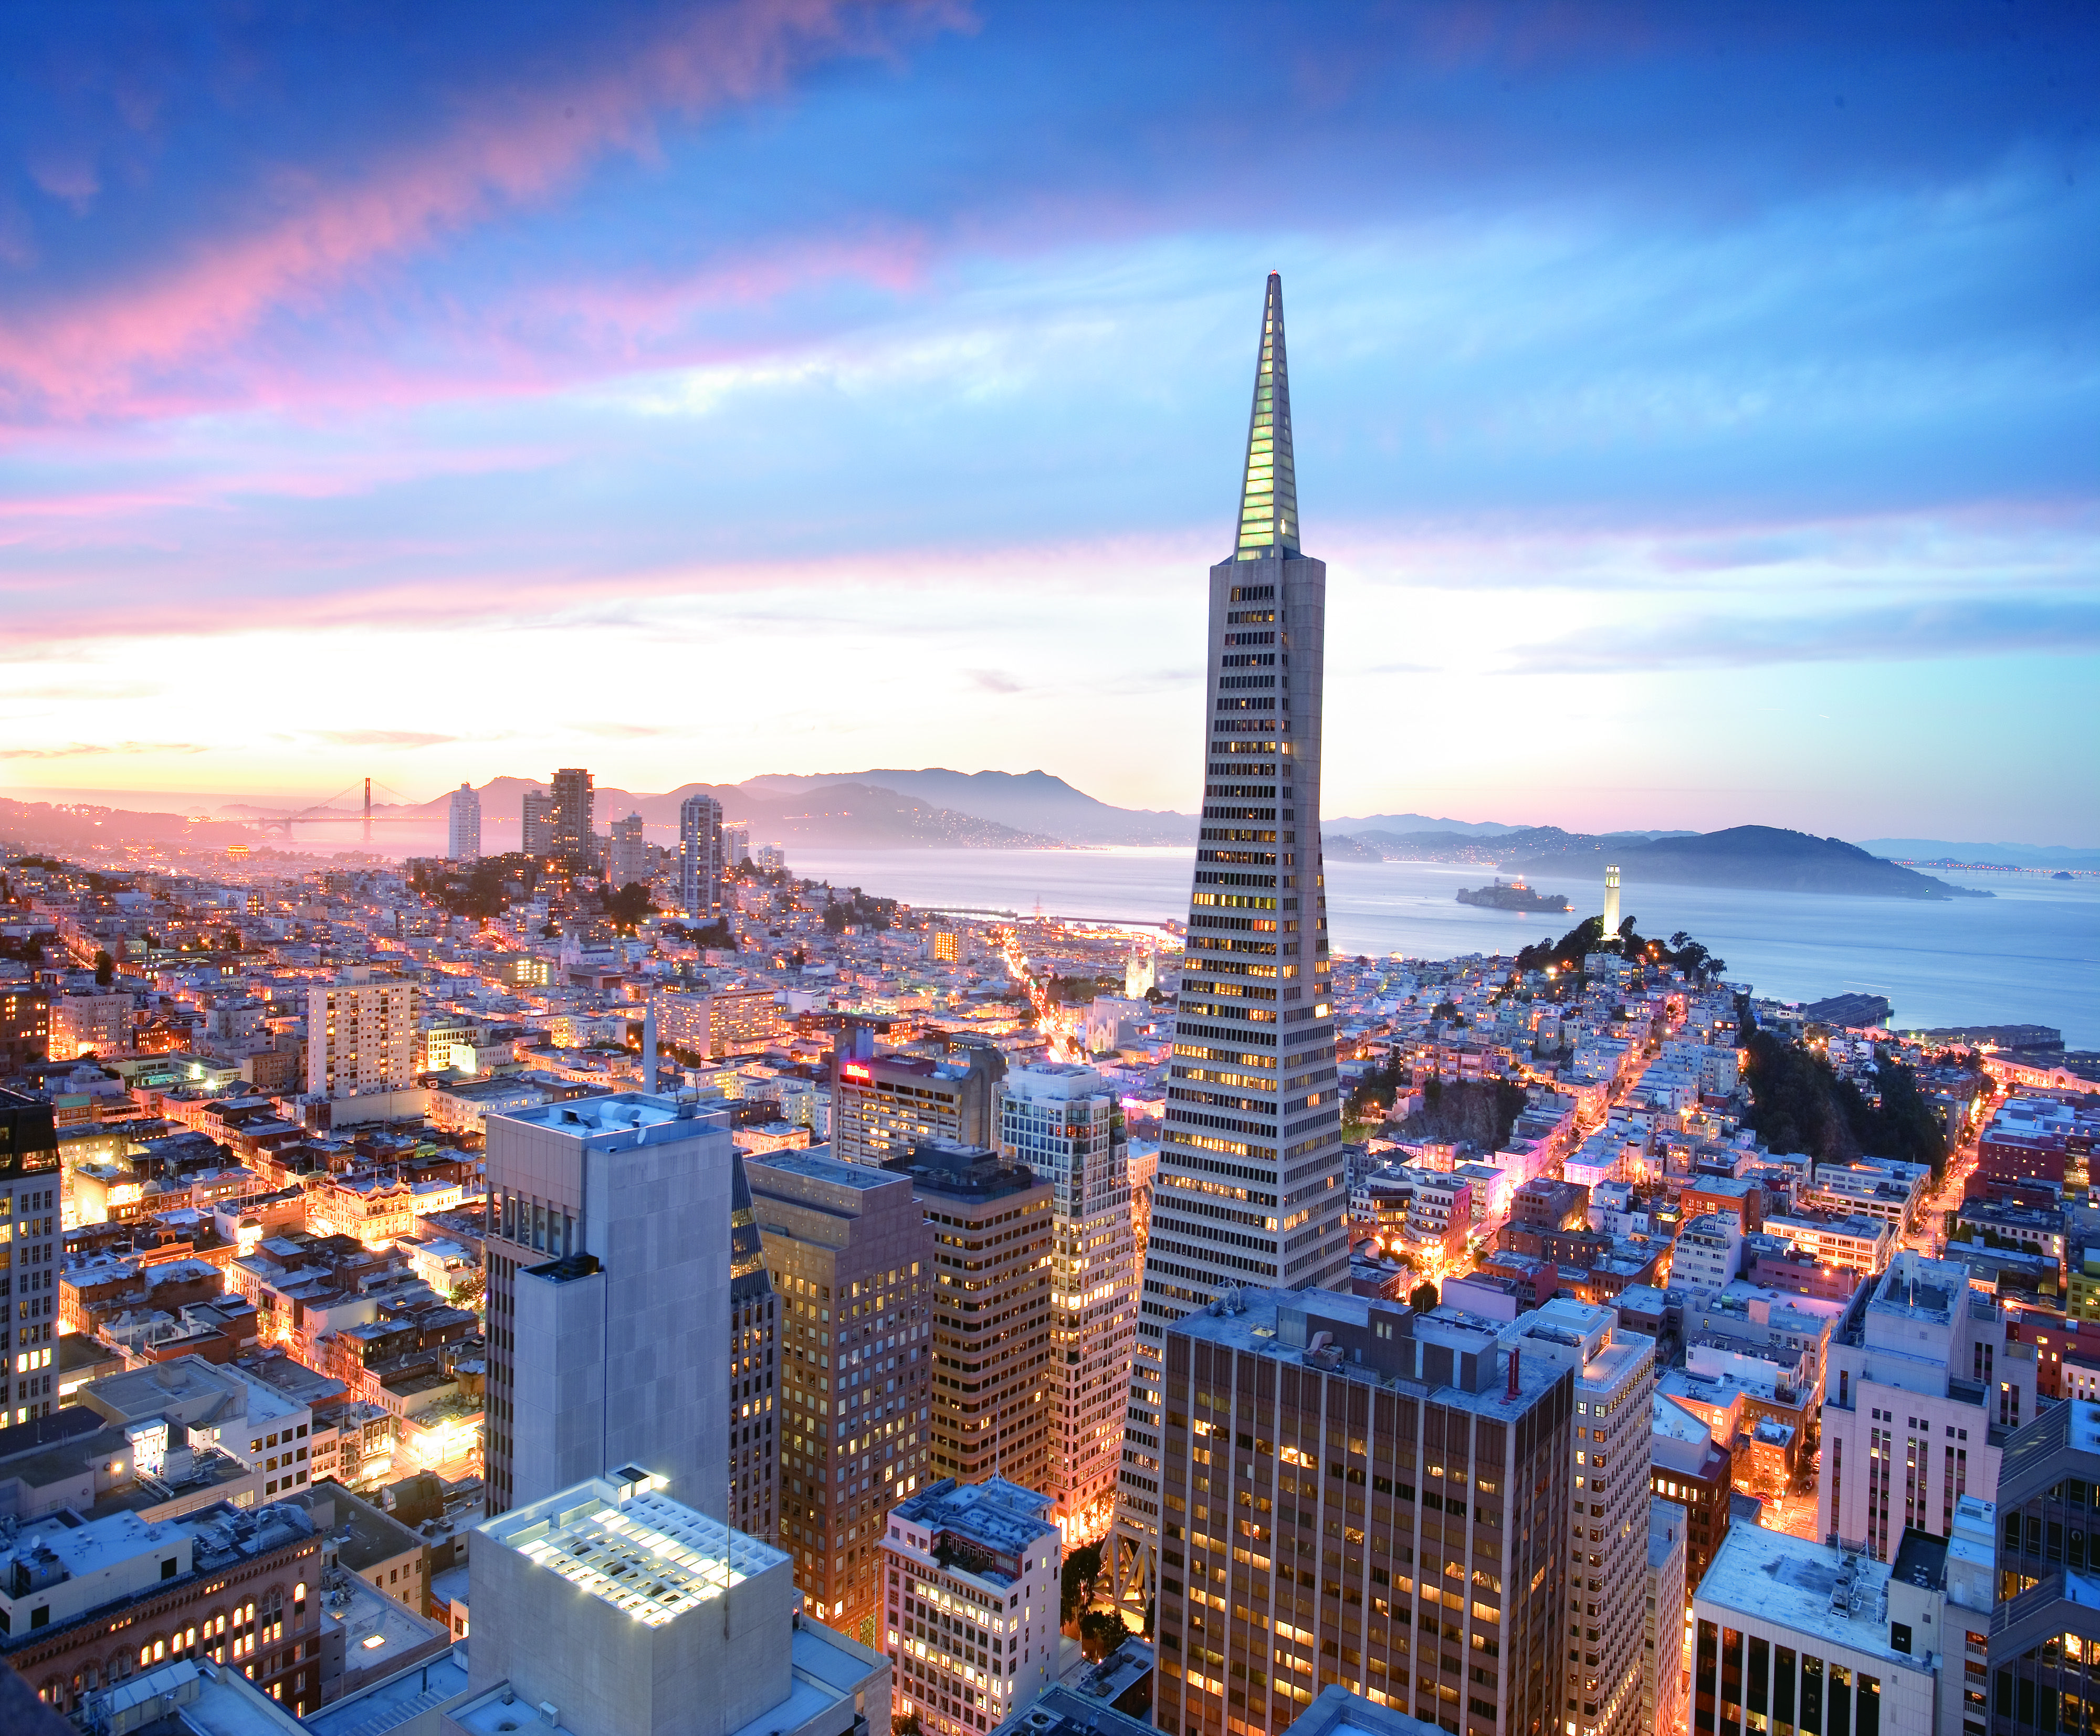 how to take sharp city scapes